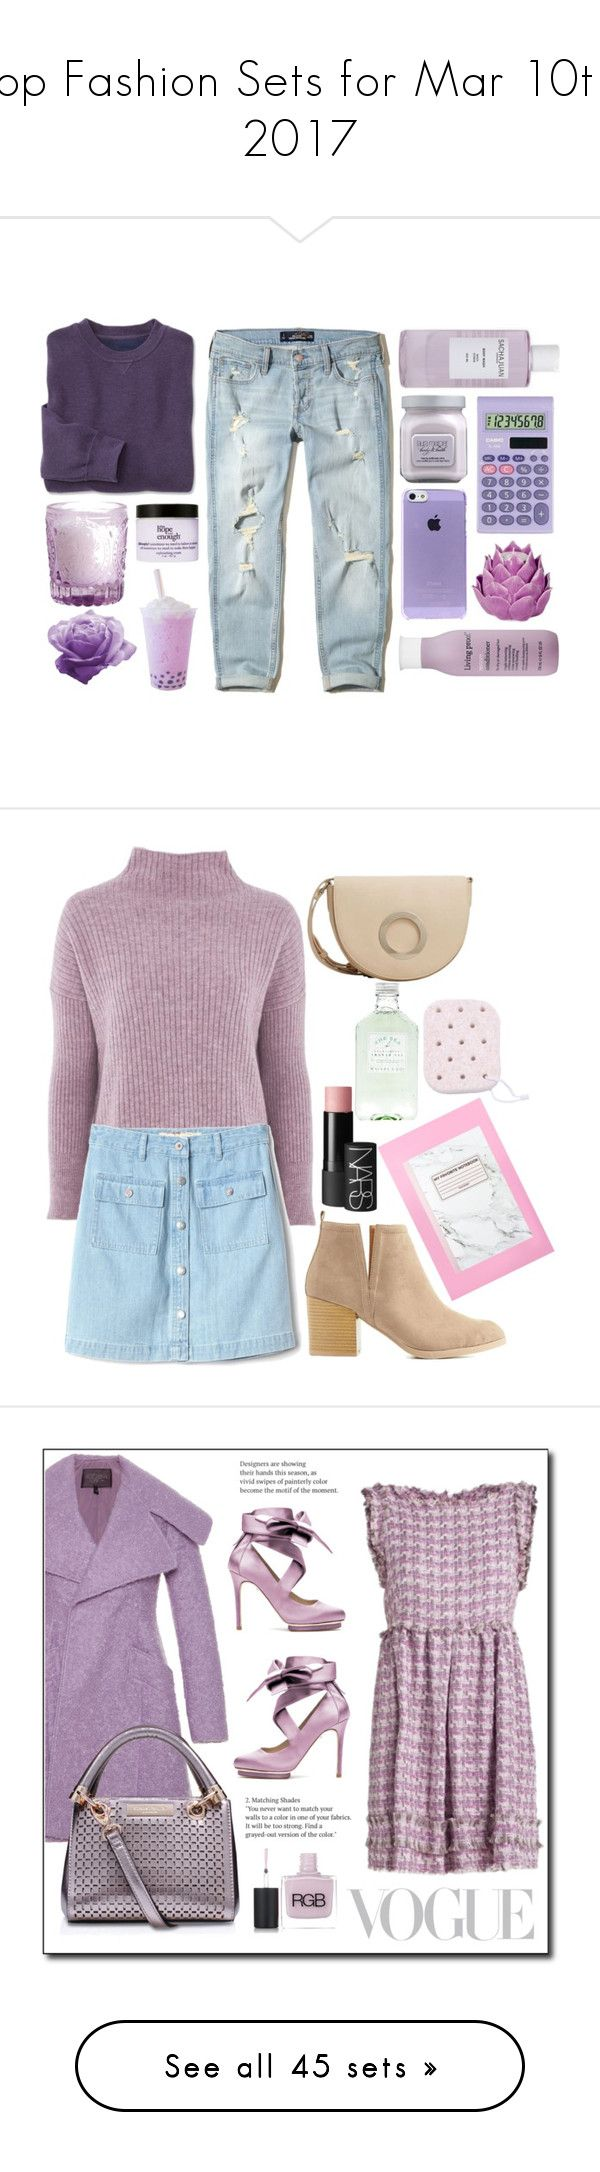 """""""Top Fashion Sets for Mar 10th, 2017"""" by polyvore ❤ liked on Polyvore featuring art, fashionbylauren, Topshop, Gap, Charlotte Russe, NARS Cosmetics, MANGO, Giambattista Valli, Liam Fahy and House of Fraser"""